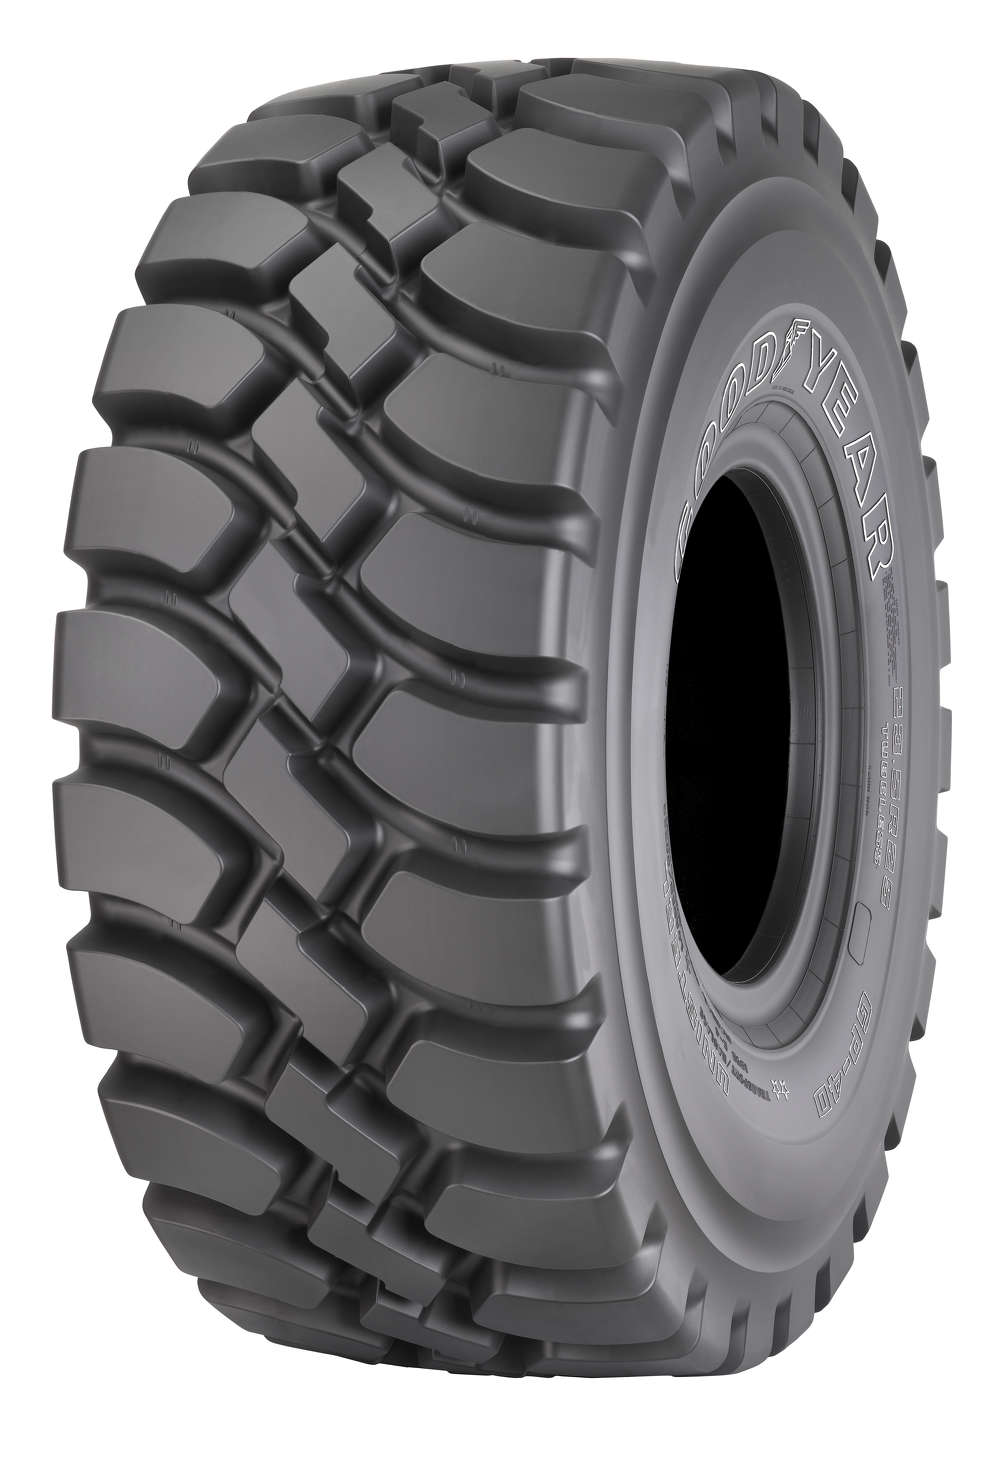 The Goodyear GP-4D, a high-traction, deep-tread tire for articulated dump trucks that features a non-directional tread design.